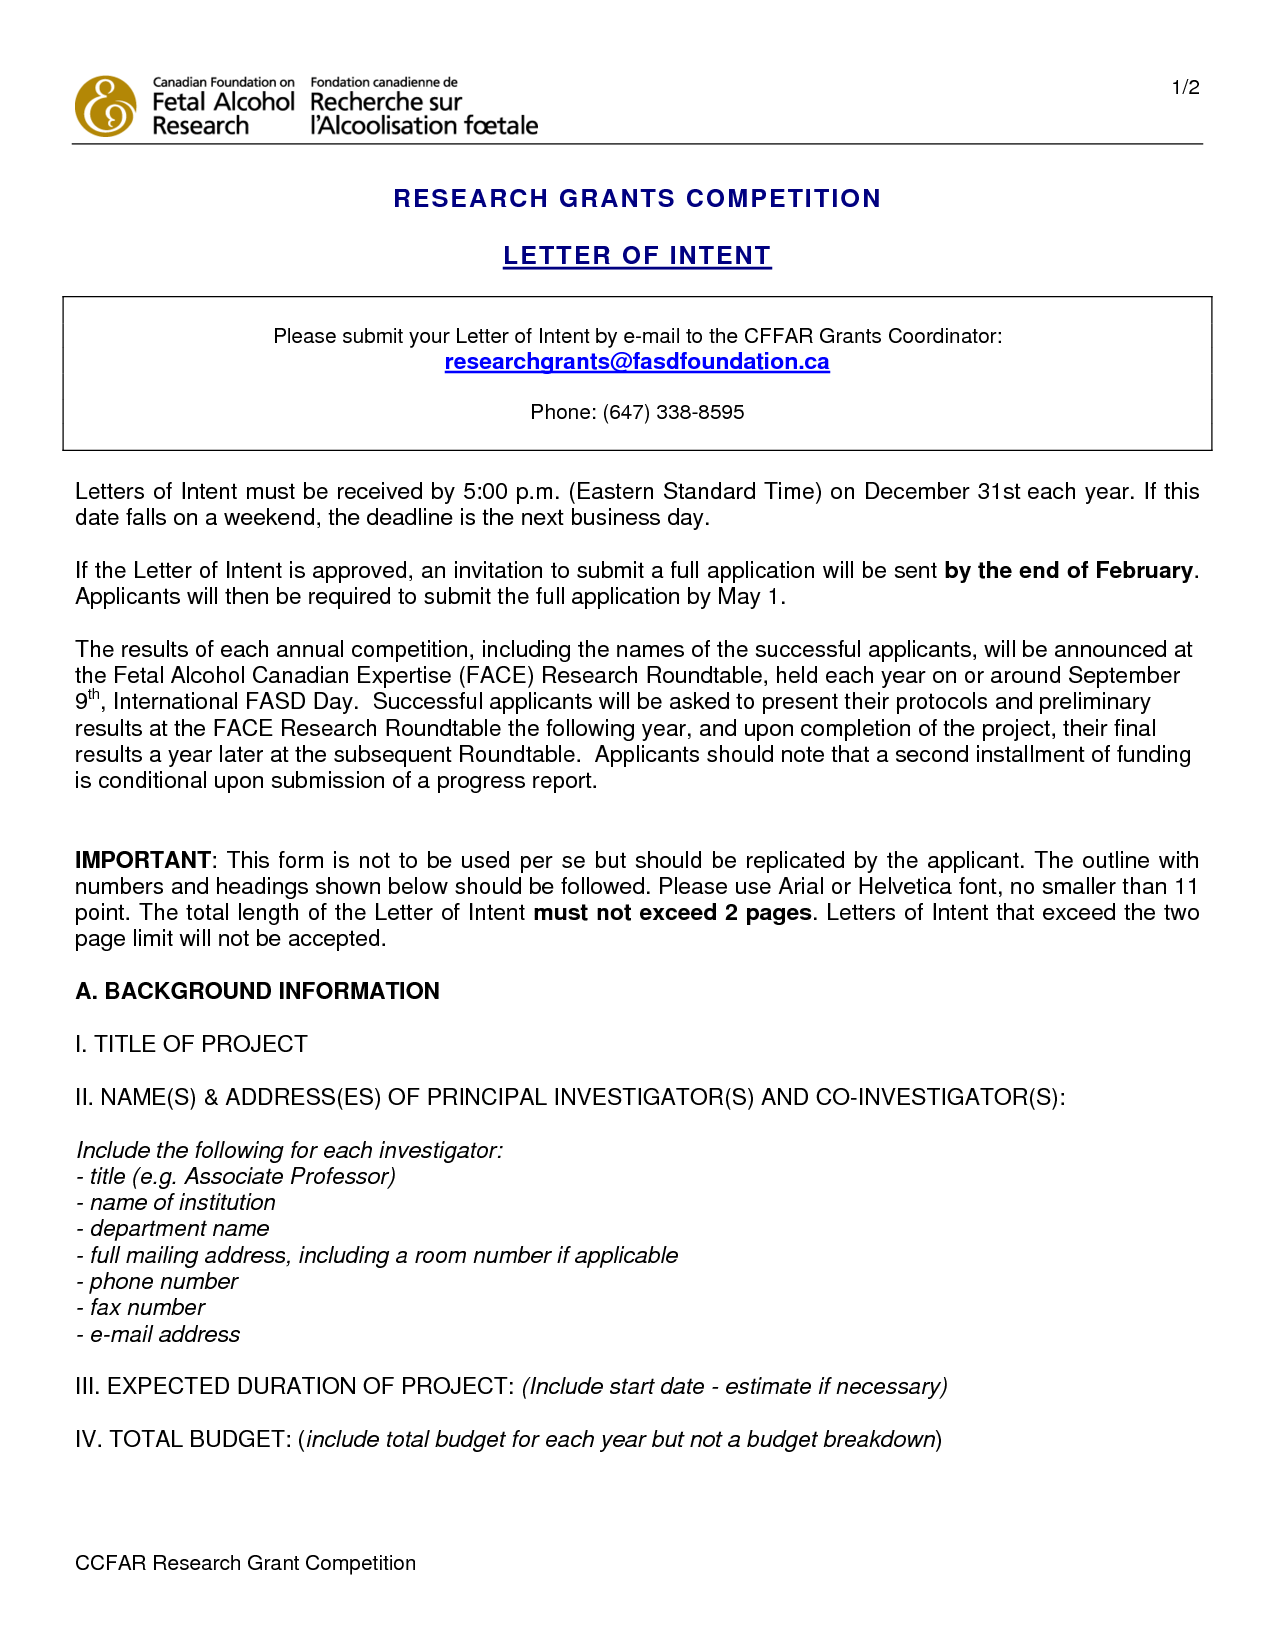 Letter Of Intent Grant Application Sample - How to Write A Winning